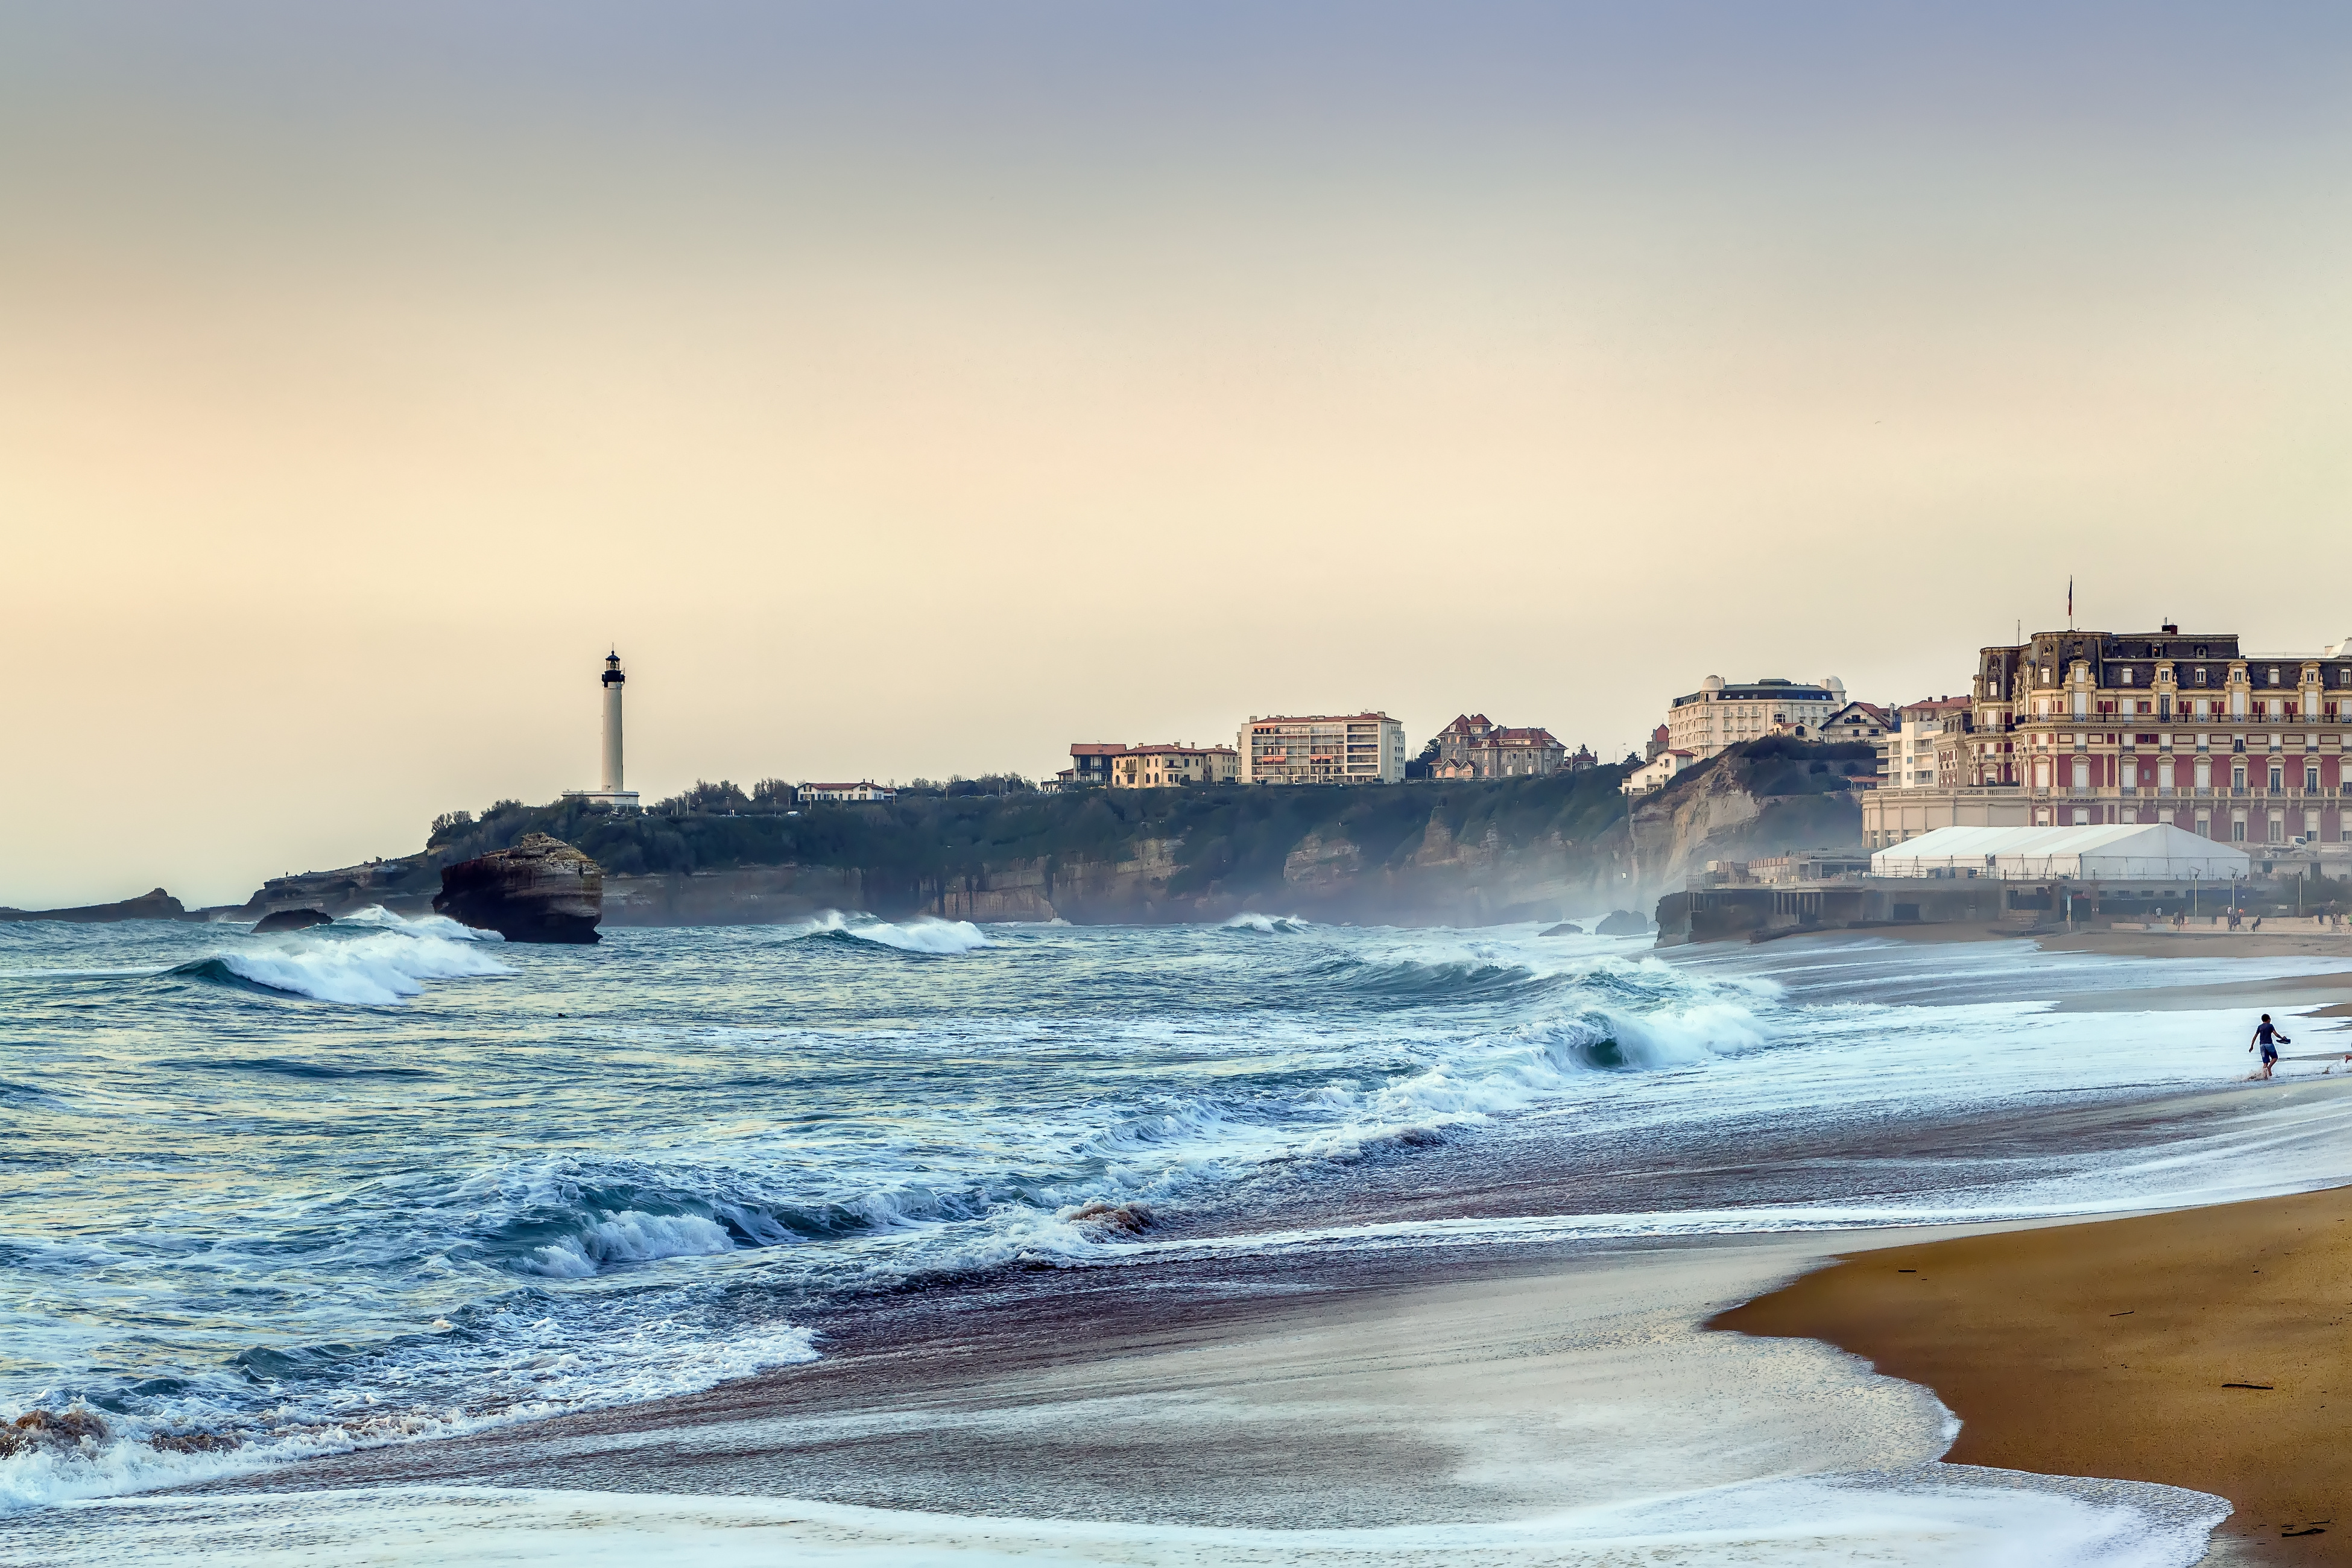 660/Photos/Saint_Julien/Biarritz/AdobeStock_234520526.jpeg